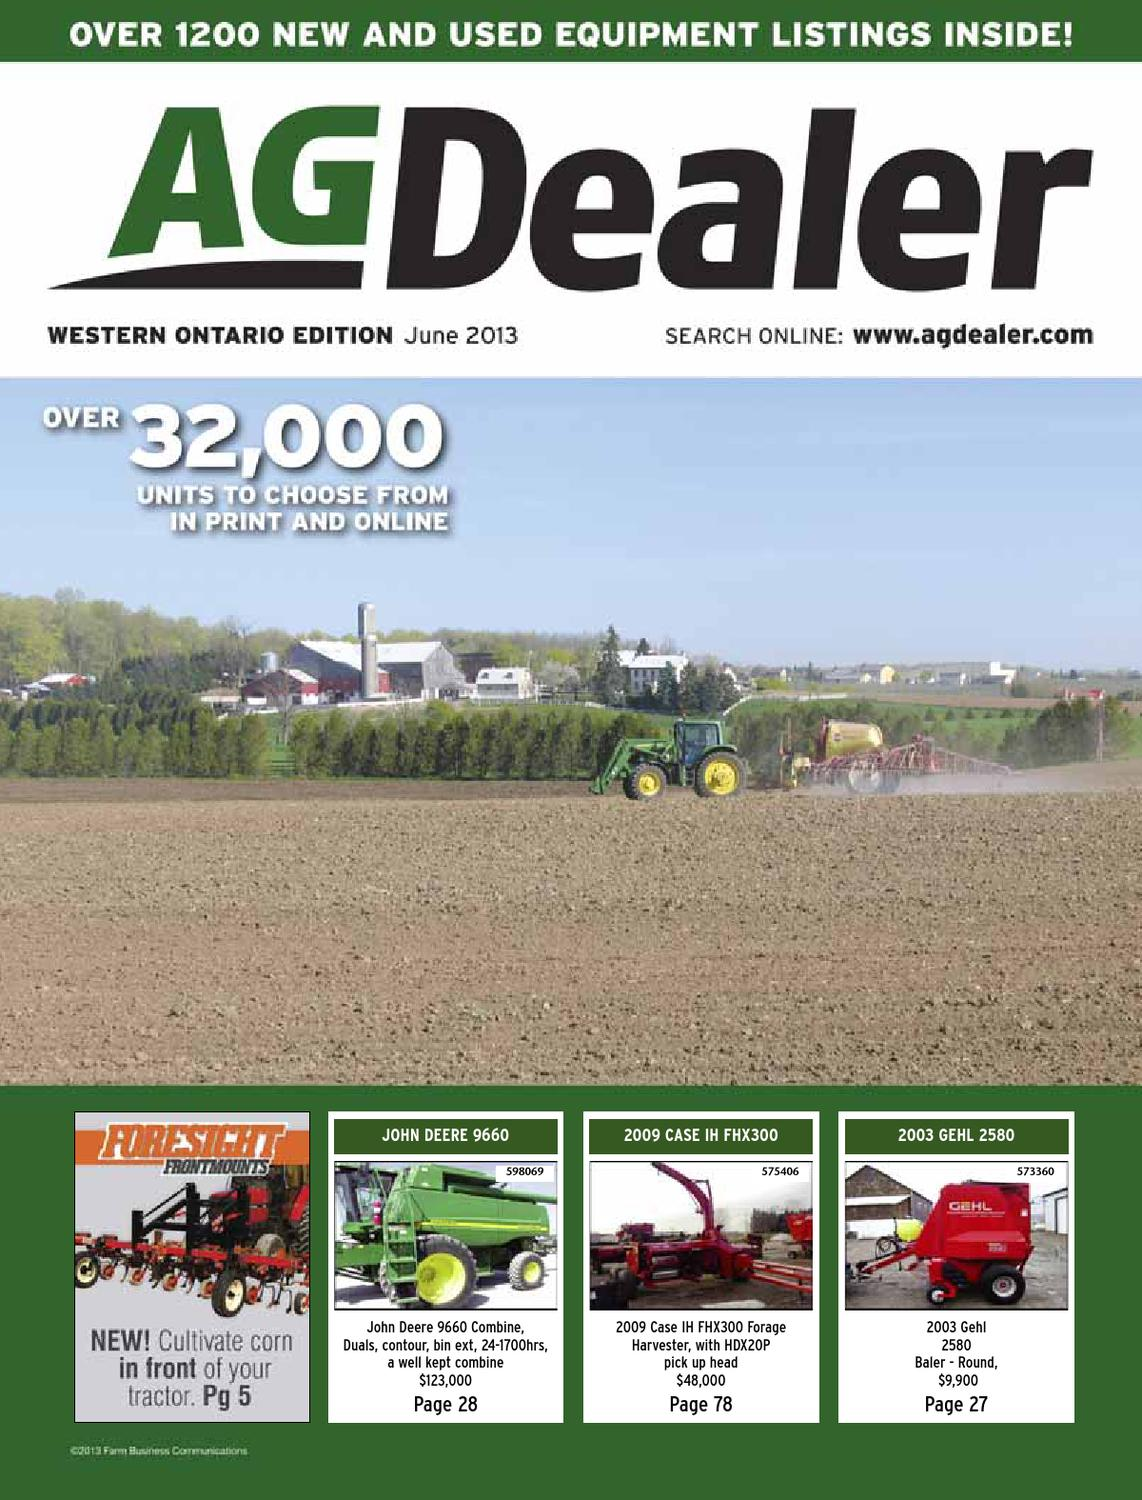 AGDealer Western Ontario Edition, June 2013 by Farm Business Communications  - issuu